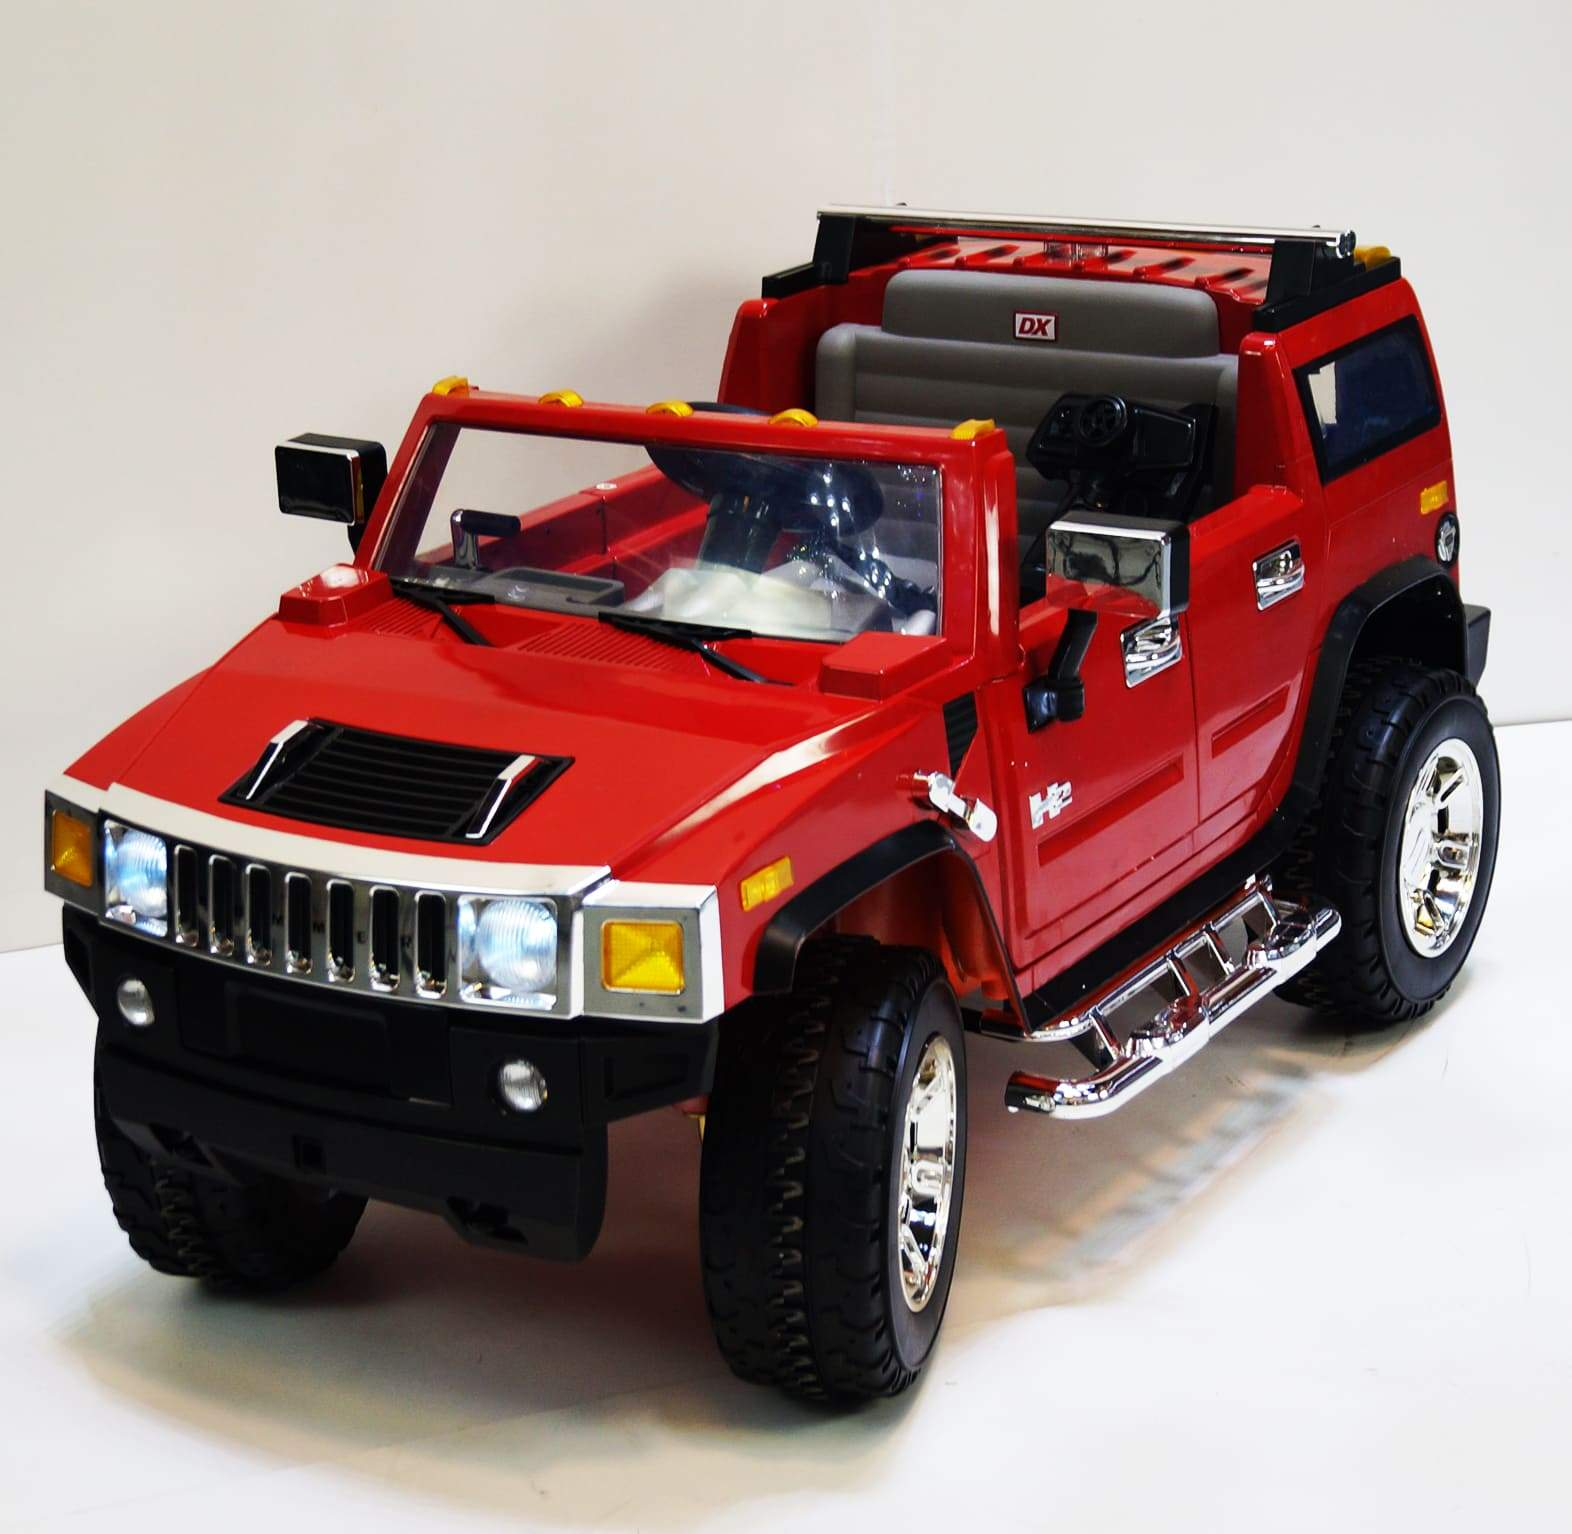 HUMMER H2 INSPIRED 12V KIDS ELECTRIC RIDE-ON CAR WITH R/C PARENTAL REMOTE | Red Cars & SUVs Mini Motos